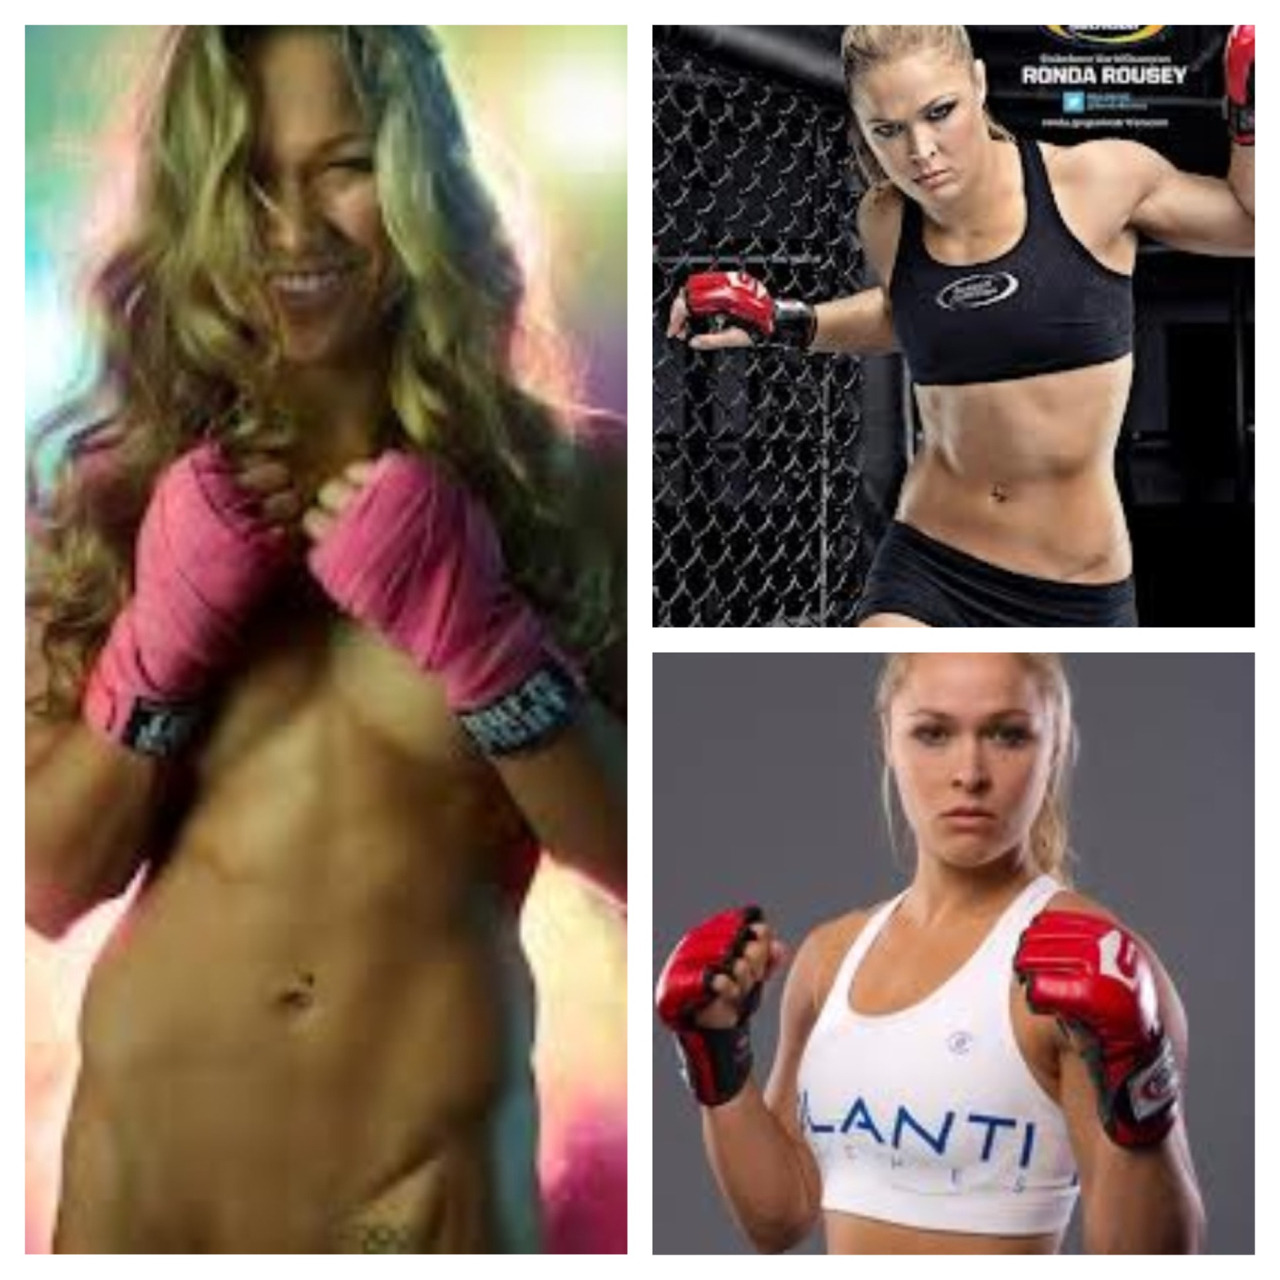 dontforget2loveyourself:  My girl crush. Ronda Rousey. ❤❤